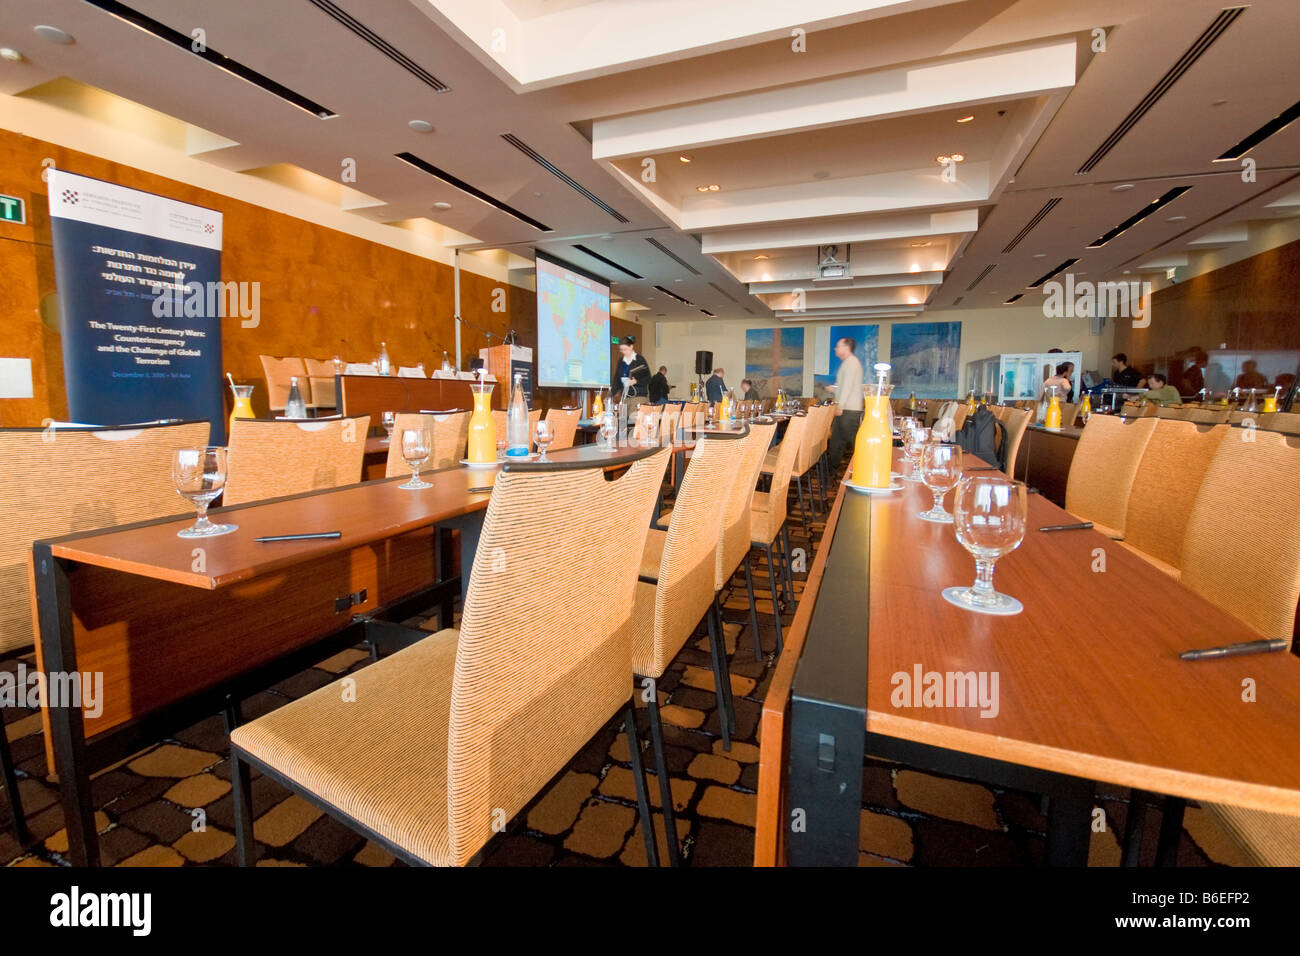 General view of the Sheraton Plaza Tel-Aviv conference room, at the Adelson Institute's Dec. 2008 Counterinsurgency Stock Photo